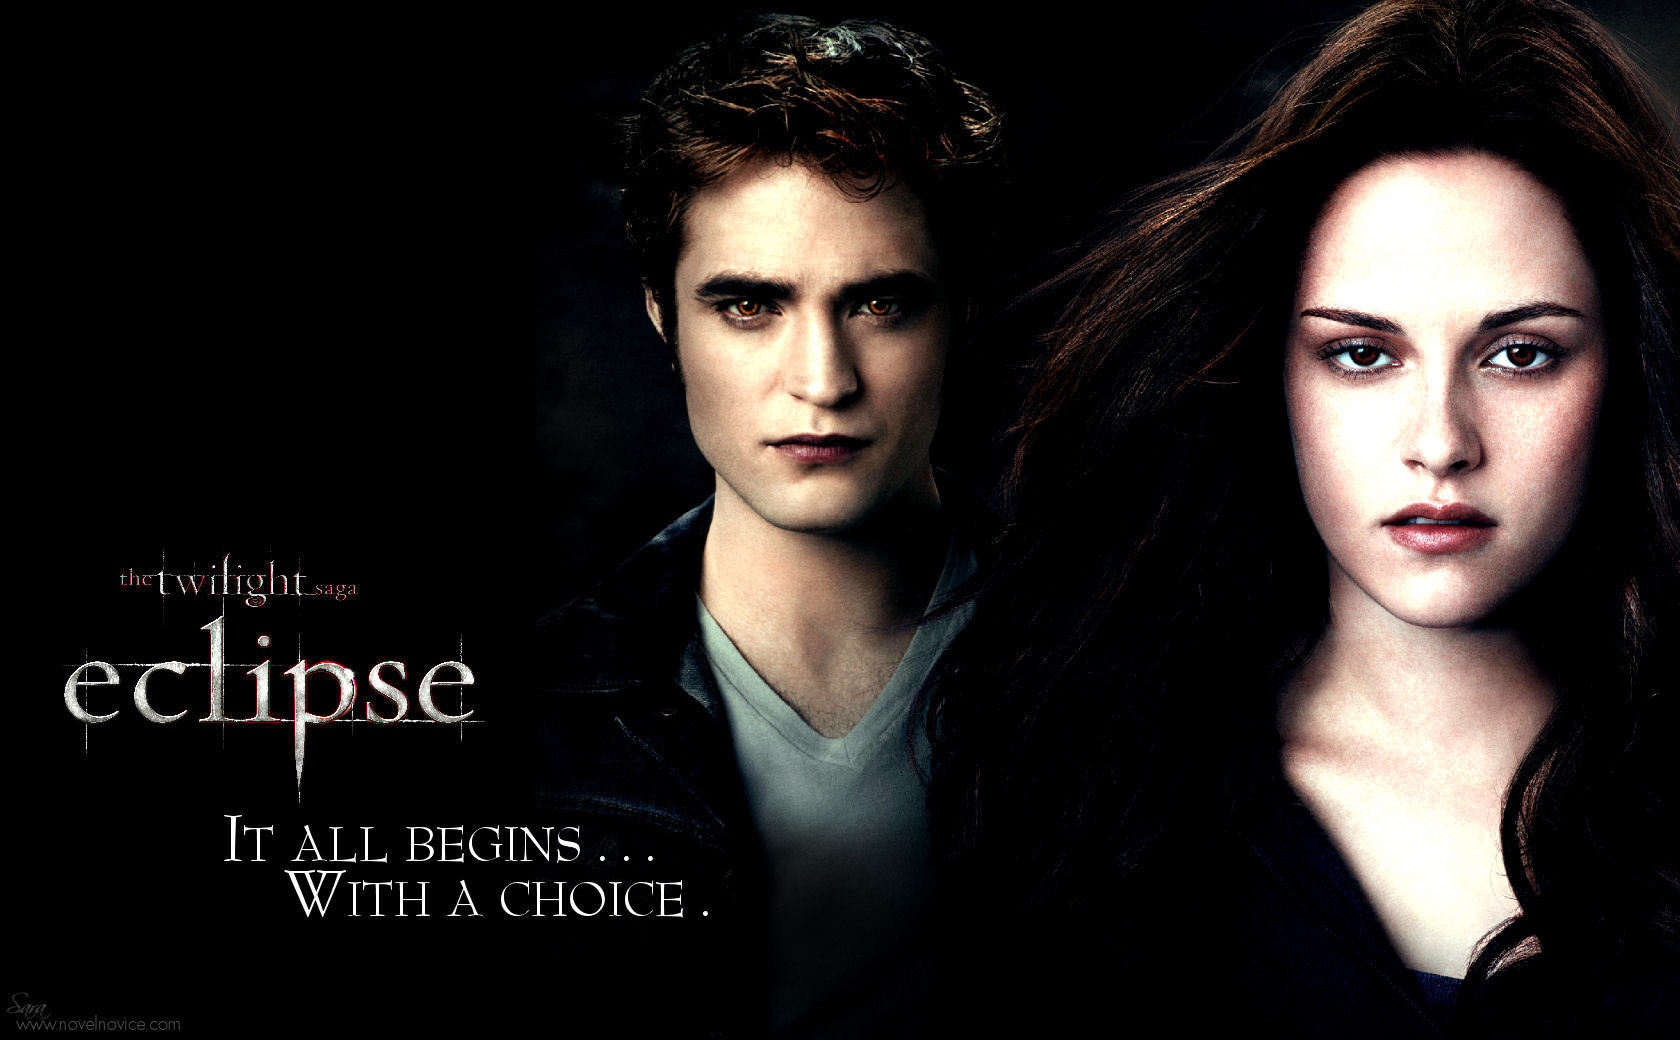 Desktop 壁纸 for The Twilight Saga Eclipse